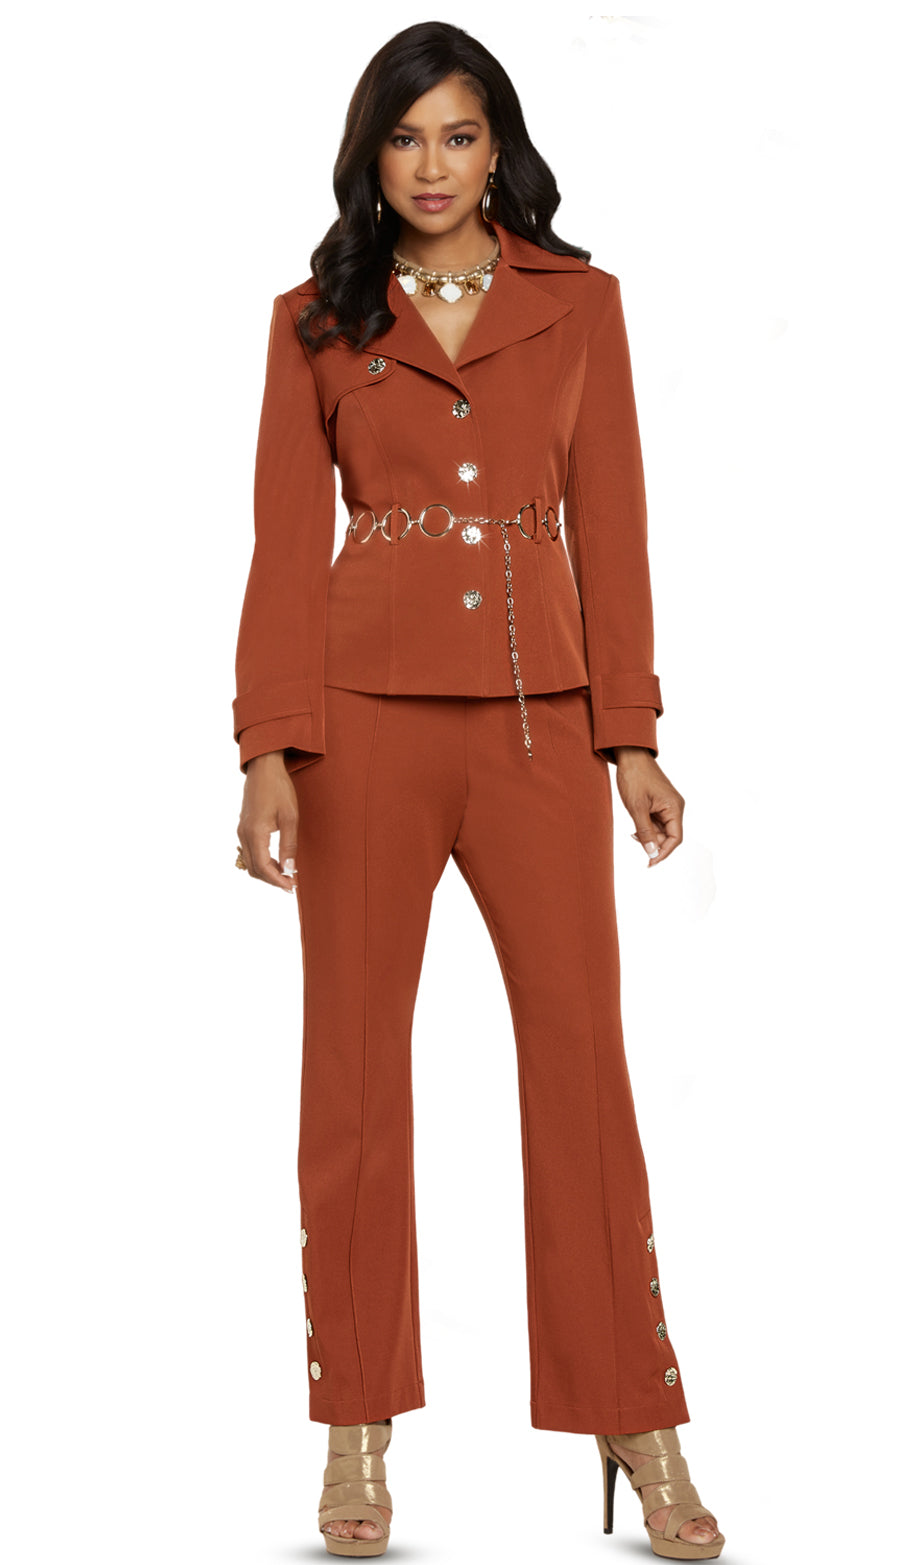 Donna Vinci Pant Suit 11899 - Church Suits For Less